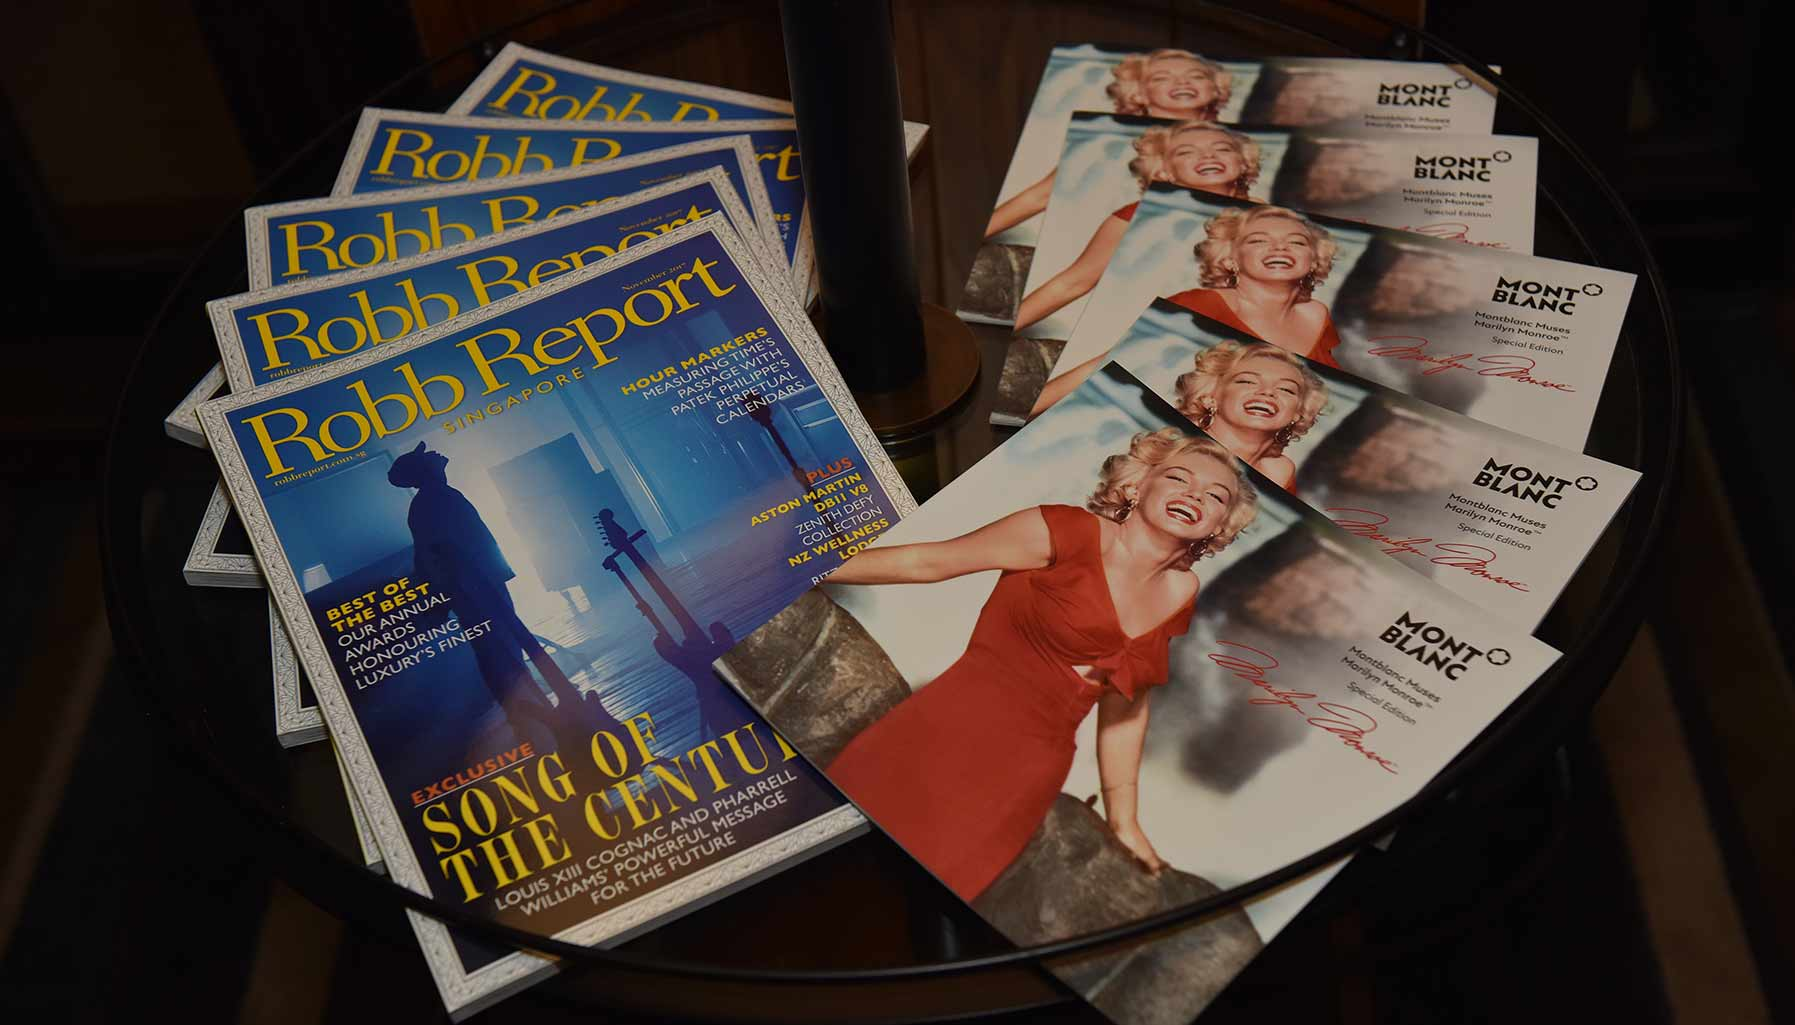 Muses Marilyn Monroe Collection, Robb Report Singapore